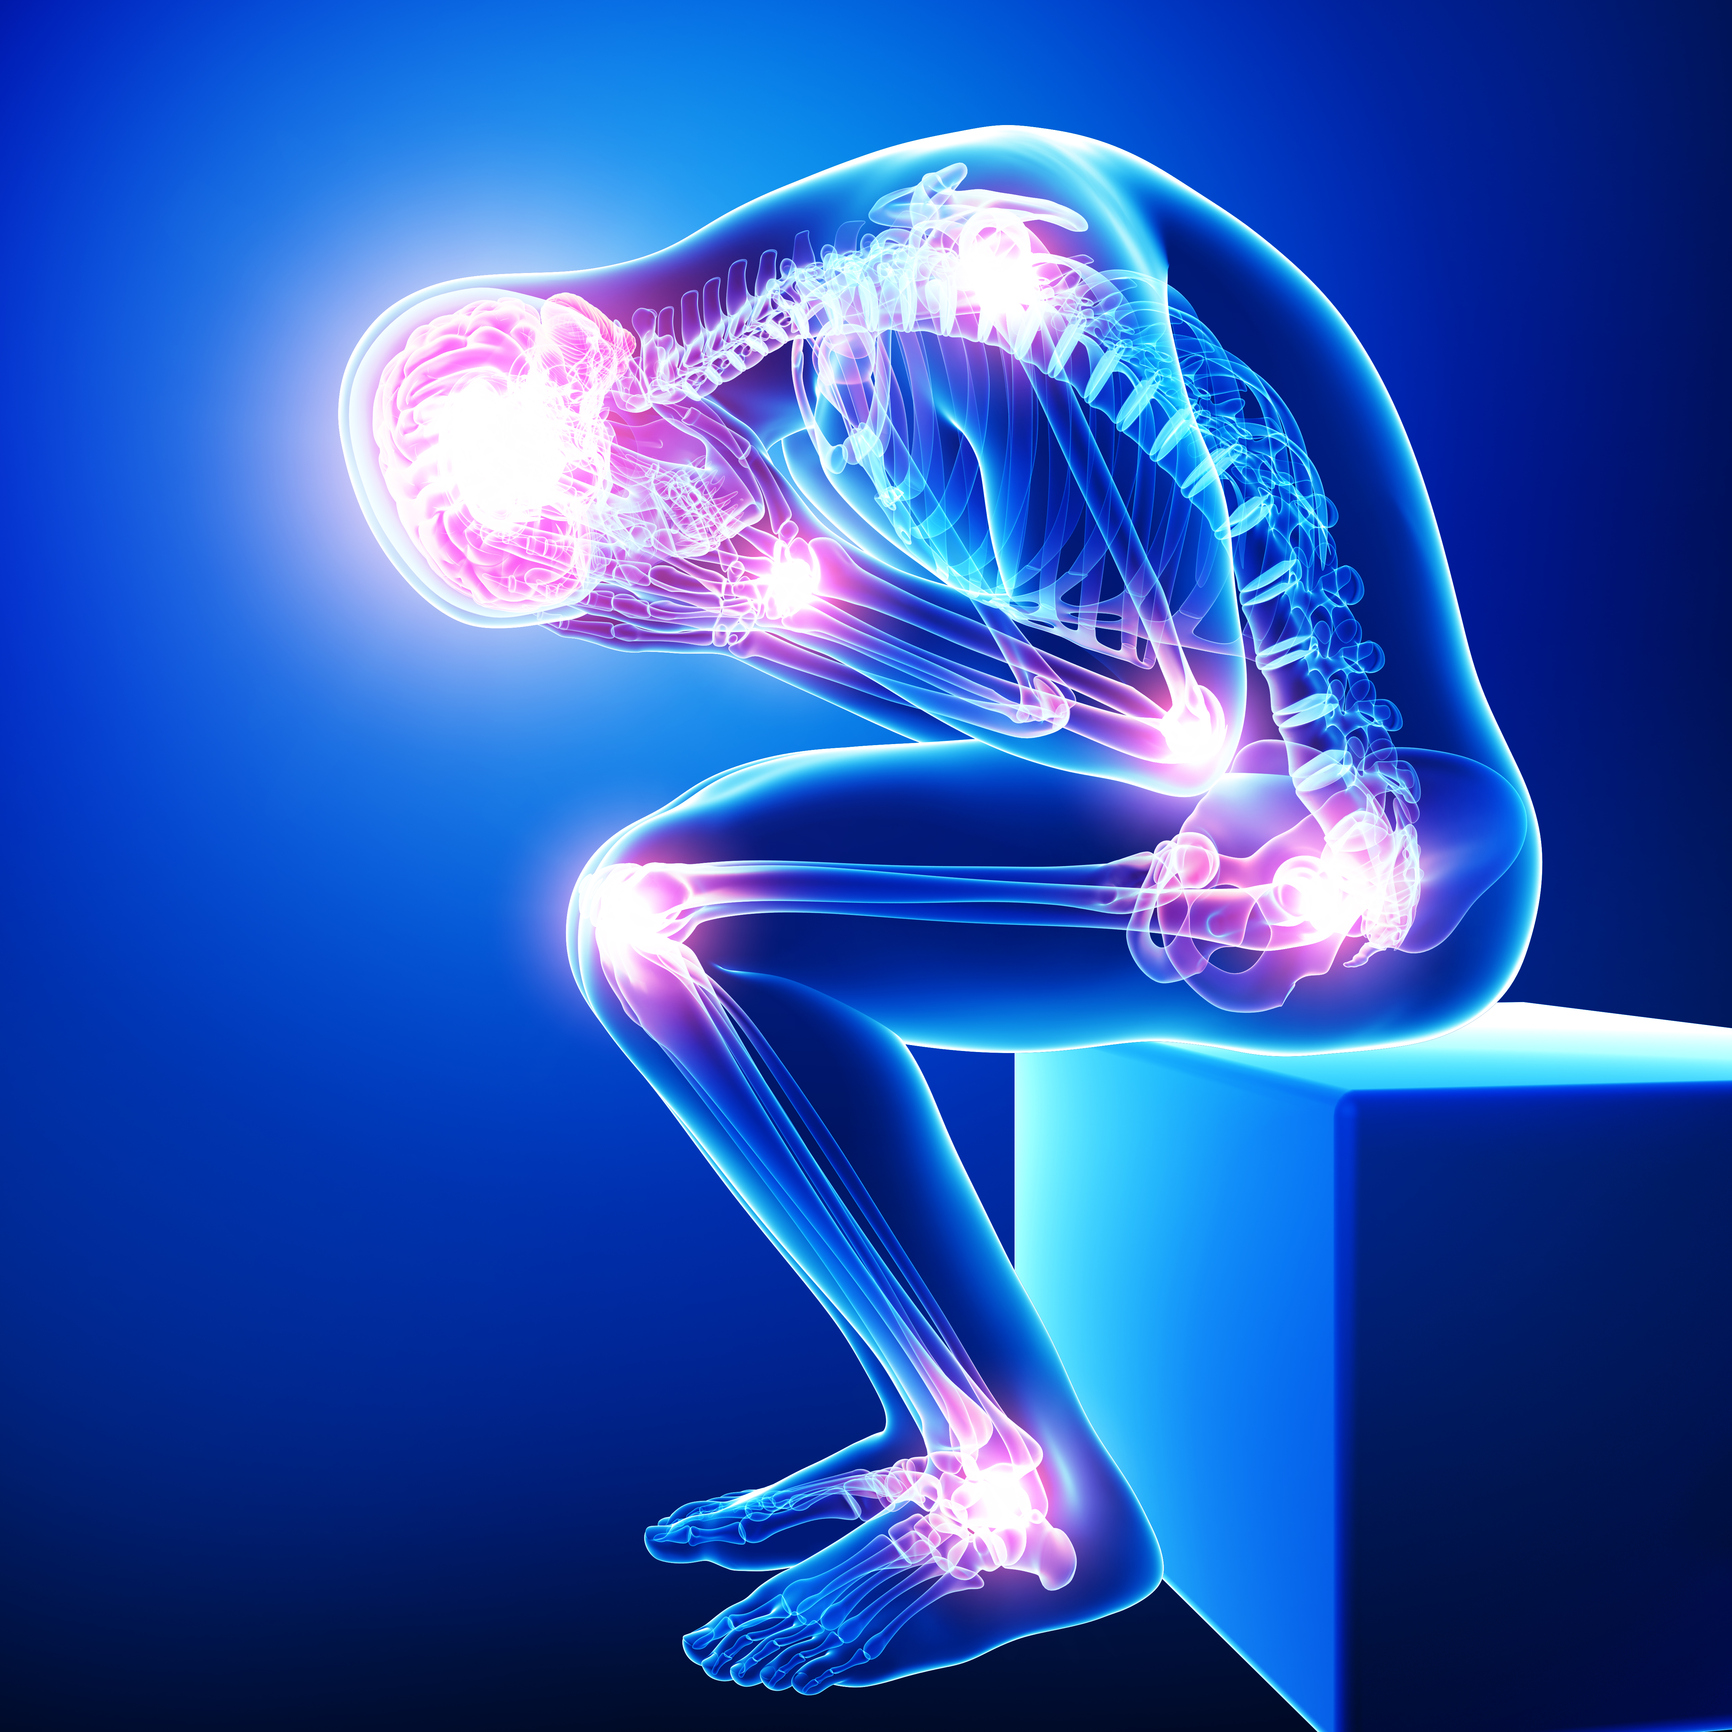 Depression, Anxiety, Worry - These emotions are vibrational frequencies that if left unchecked become physical manifestations of disease.